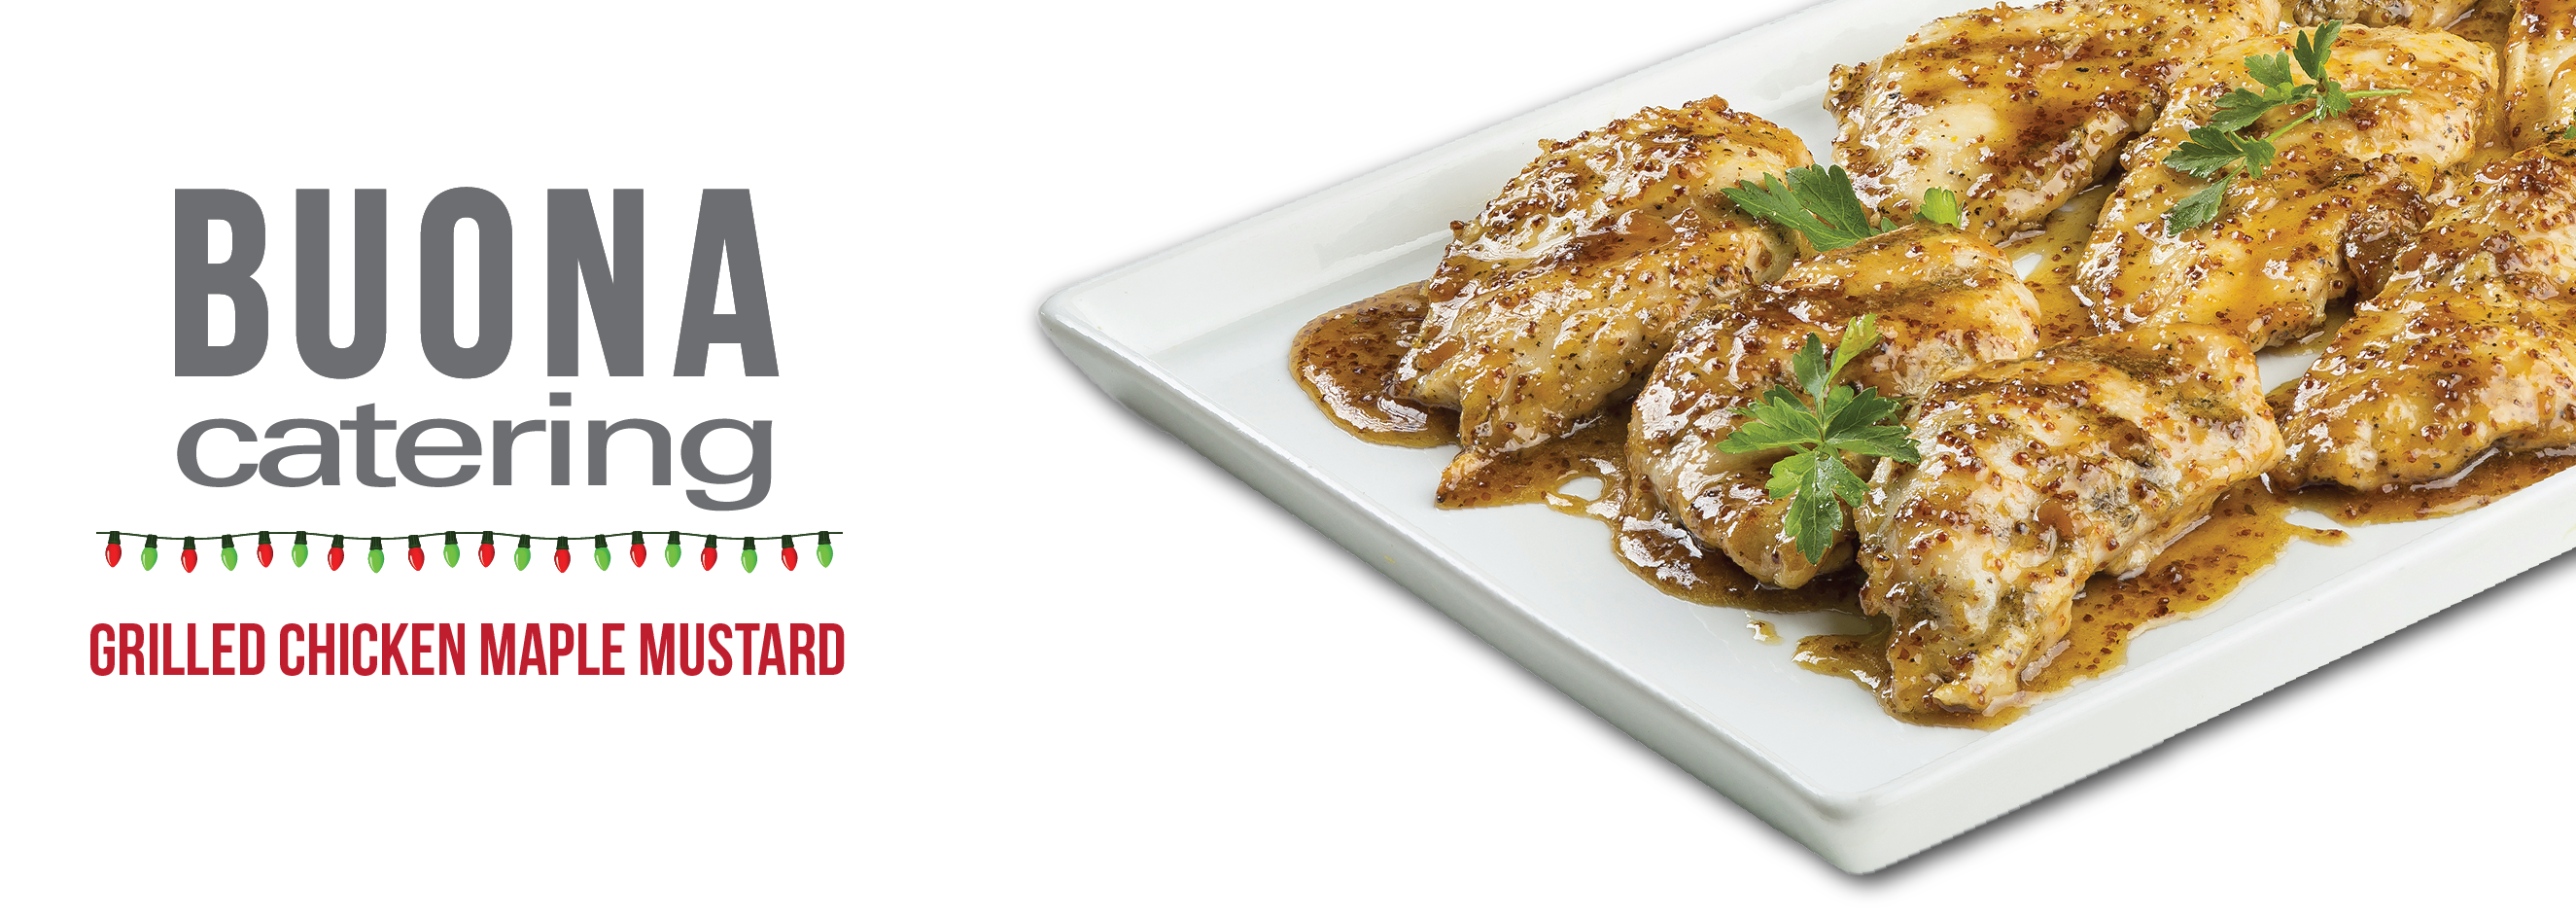 Our new Grilled Chicken Maple Mustard dish is perfect for your holiday party! Grilled boneless breast, Vermont Maple, whole grain mustard, and a touch of honey. View our full holiday catering menu HERE: http://ow.ly/VAG8z #BuonaCatering #BuonaBeef